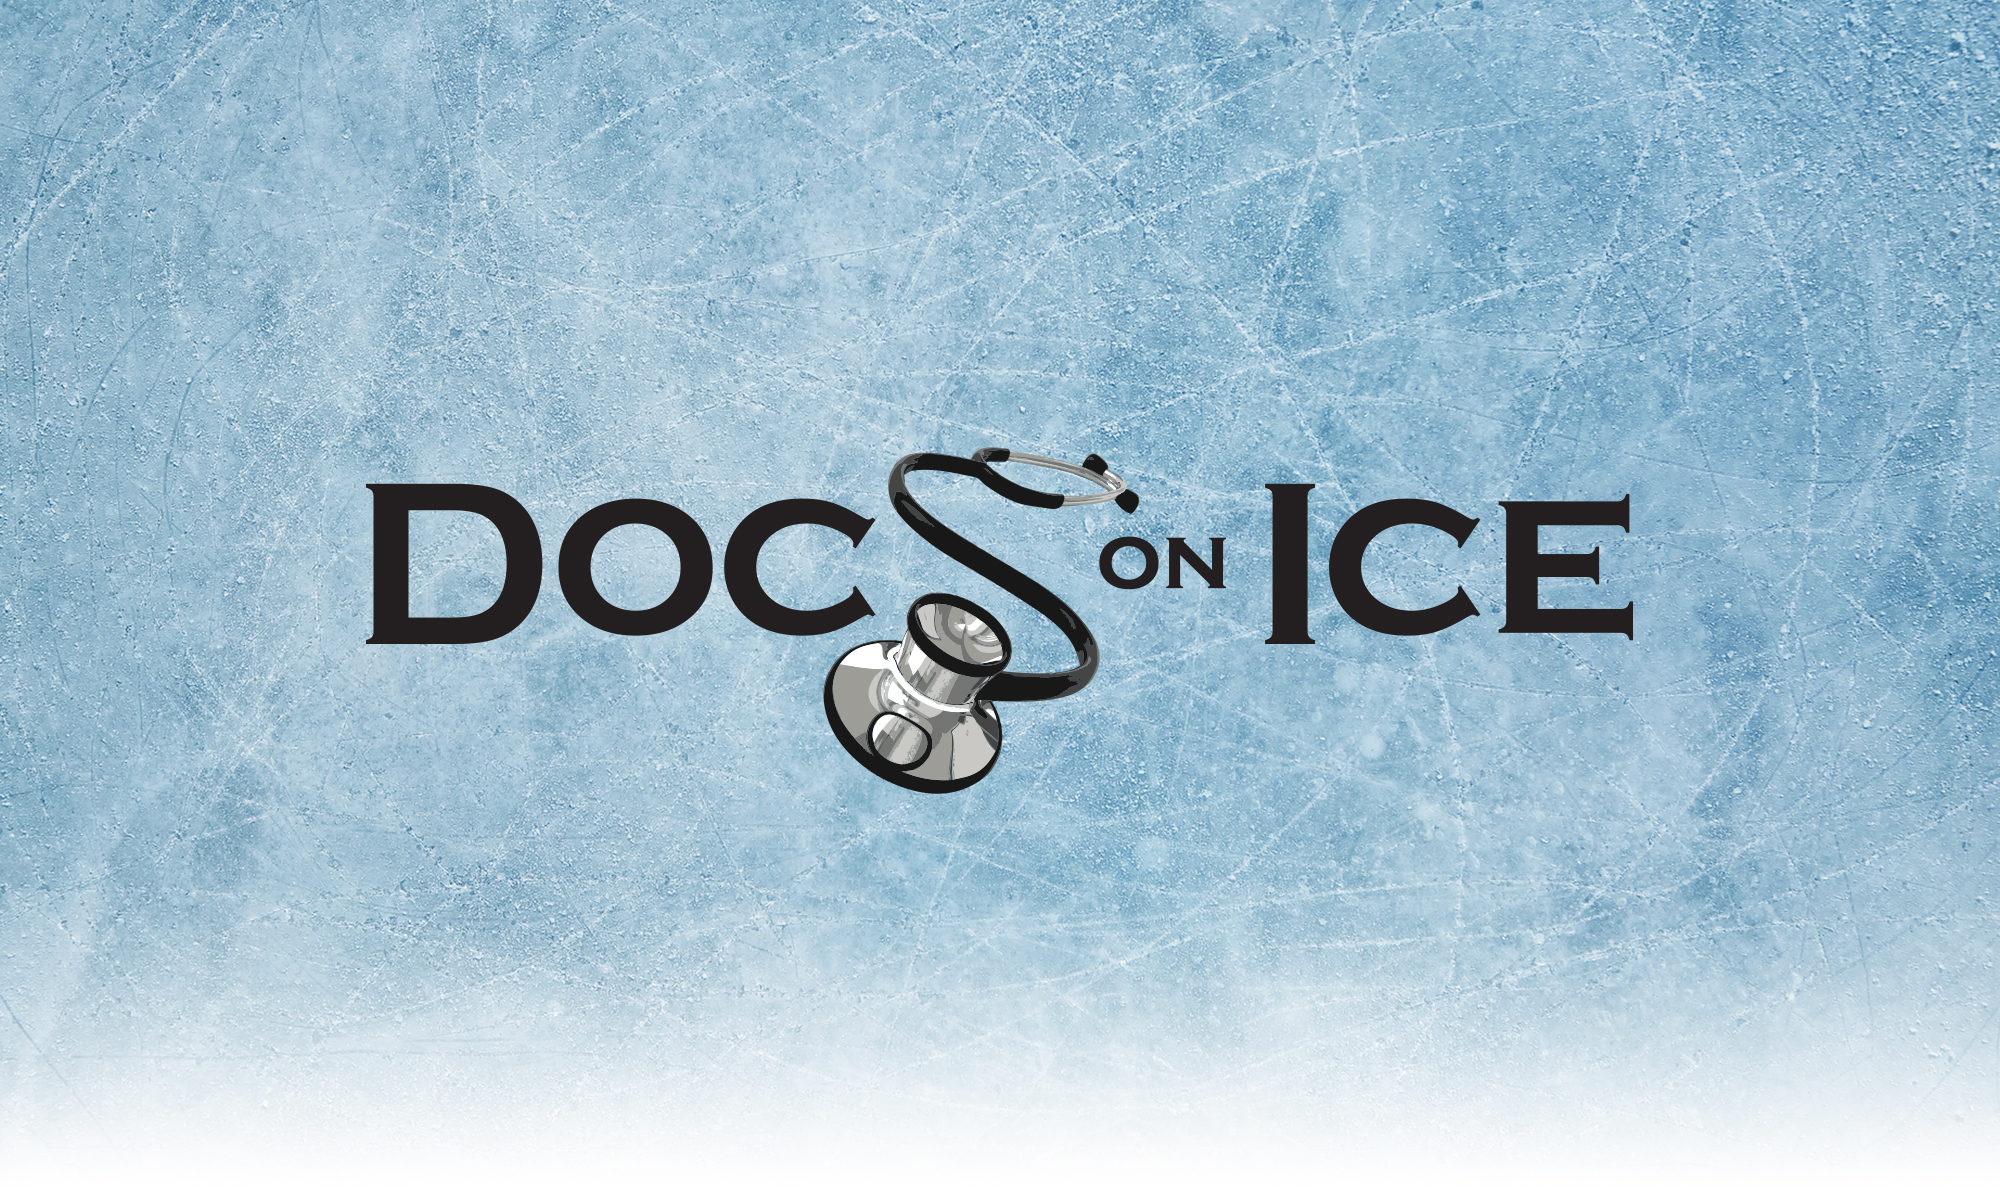 Docs on Ice